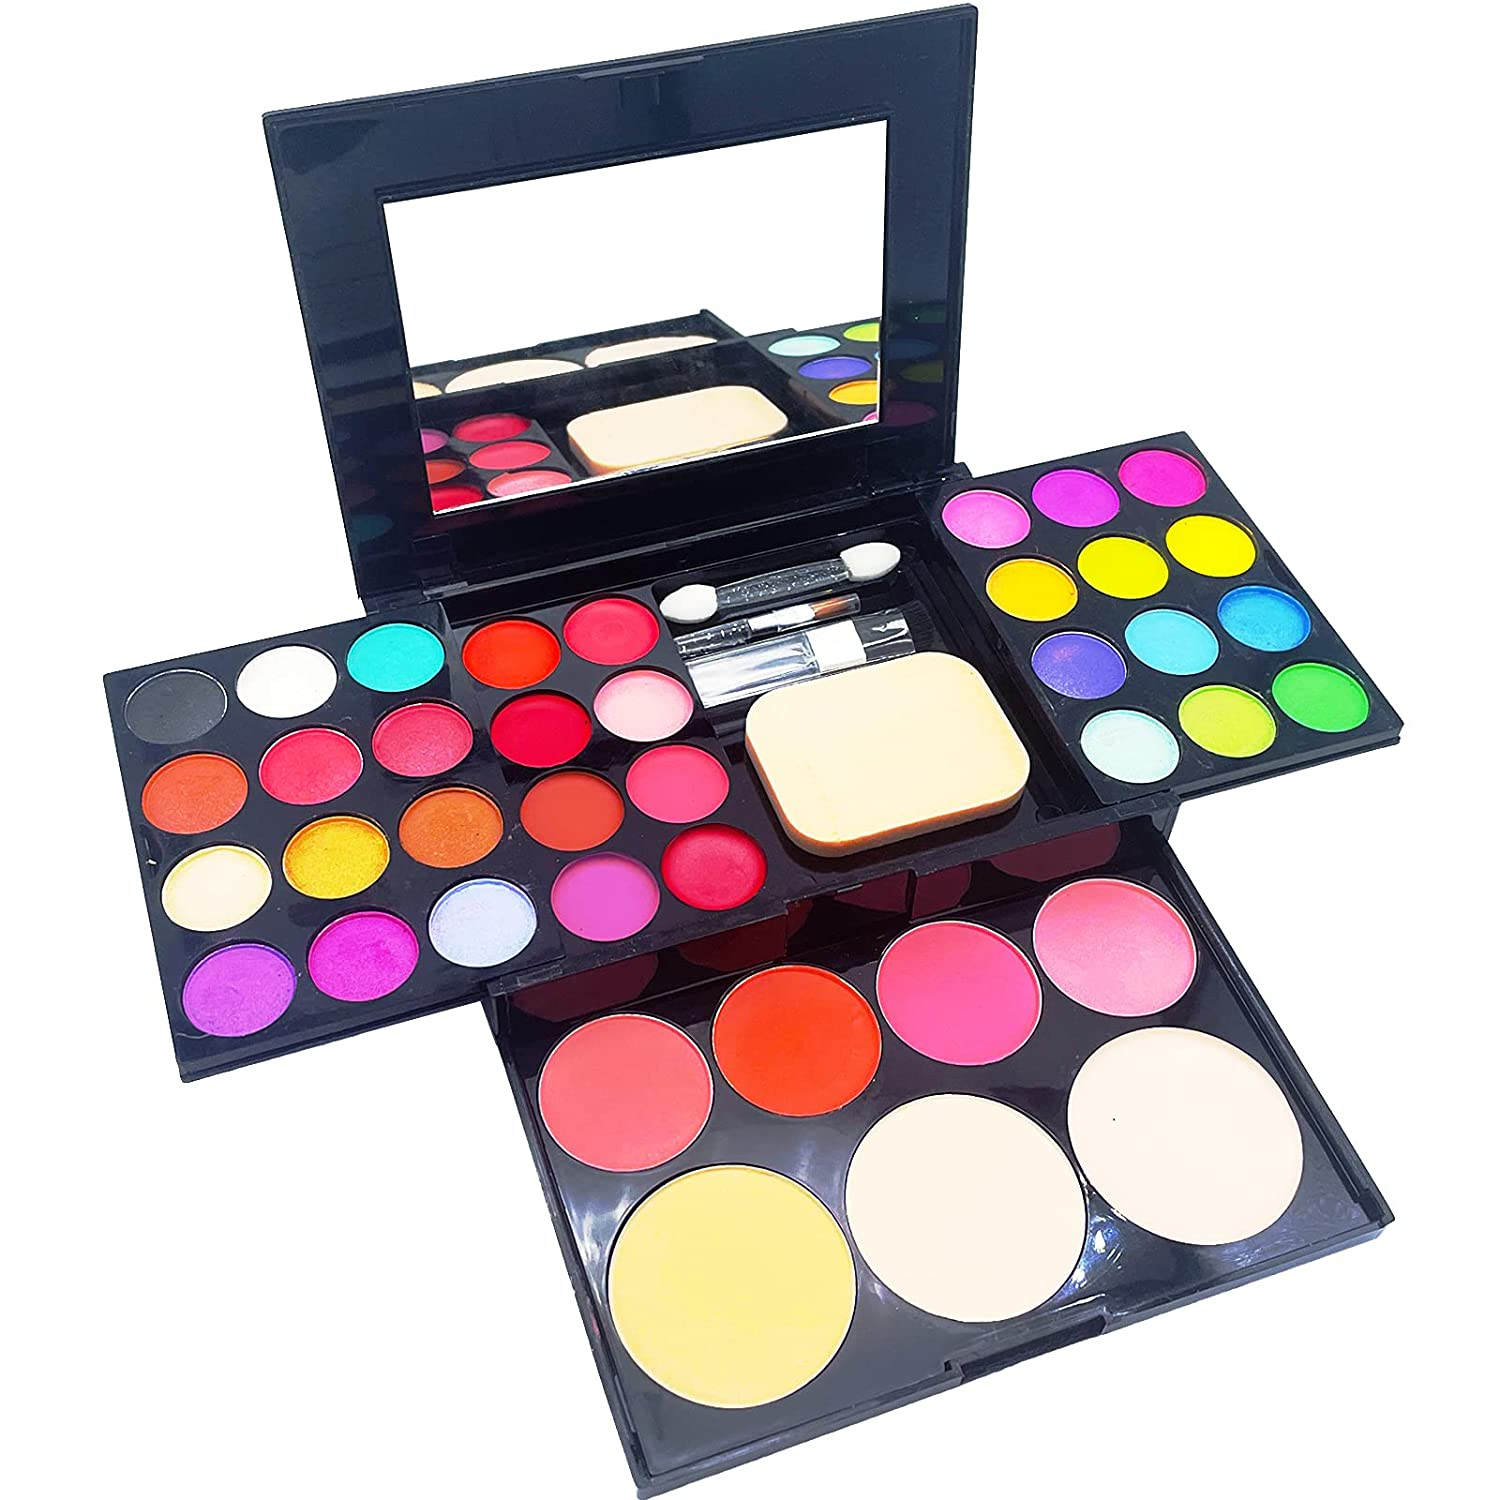 Eye Makeup Palette Set, 33 Bright Colors Matter and Shimmer Lip Gloss Blush Brushes, Colorful Long Lasting Blendable Professional Waterproof Eye Shadow Palette for Girls Festival Birthday Gift